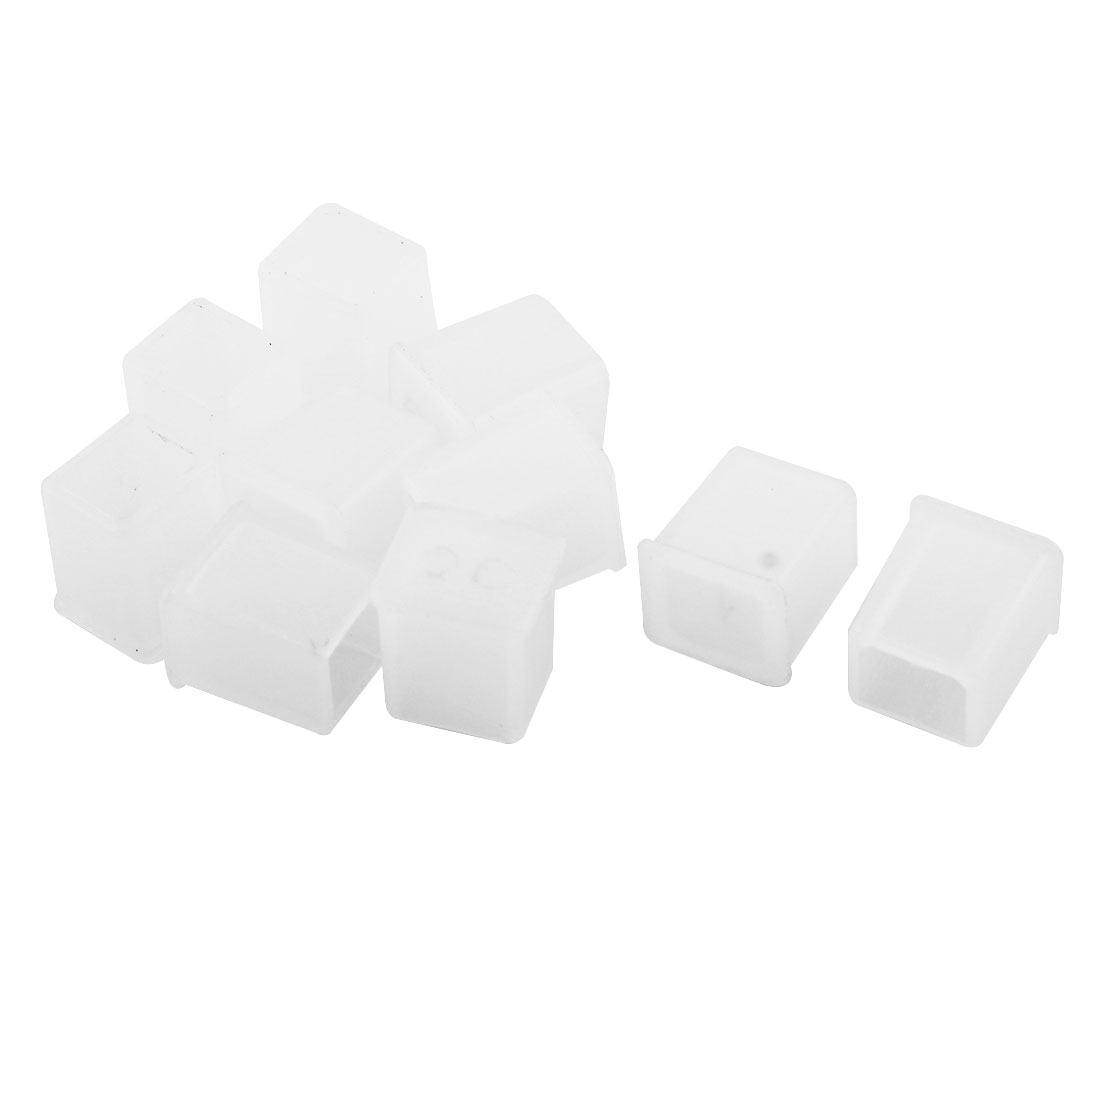 10 Pcs Clear Plastic Anti Dust Cover Cap Protector for USB-B Male Port Printer